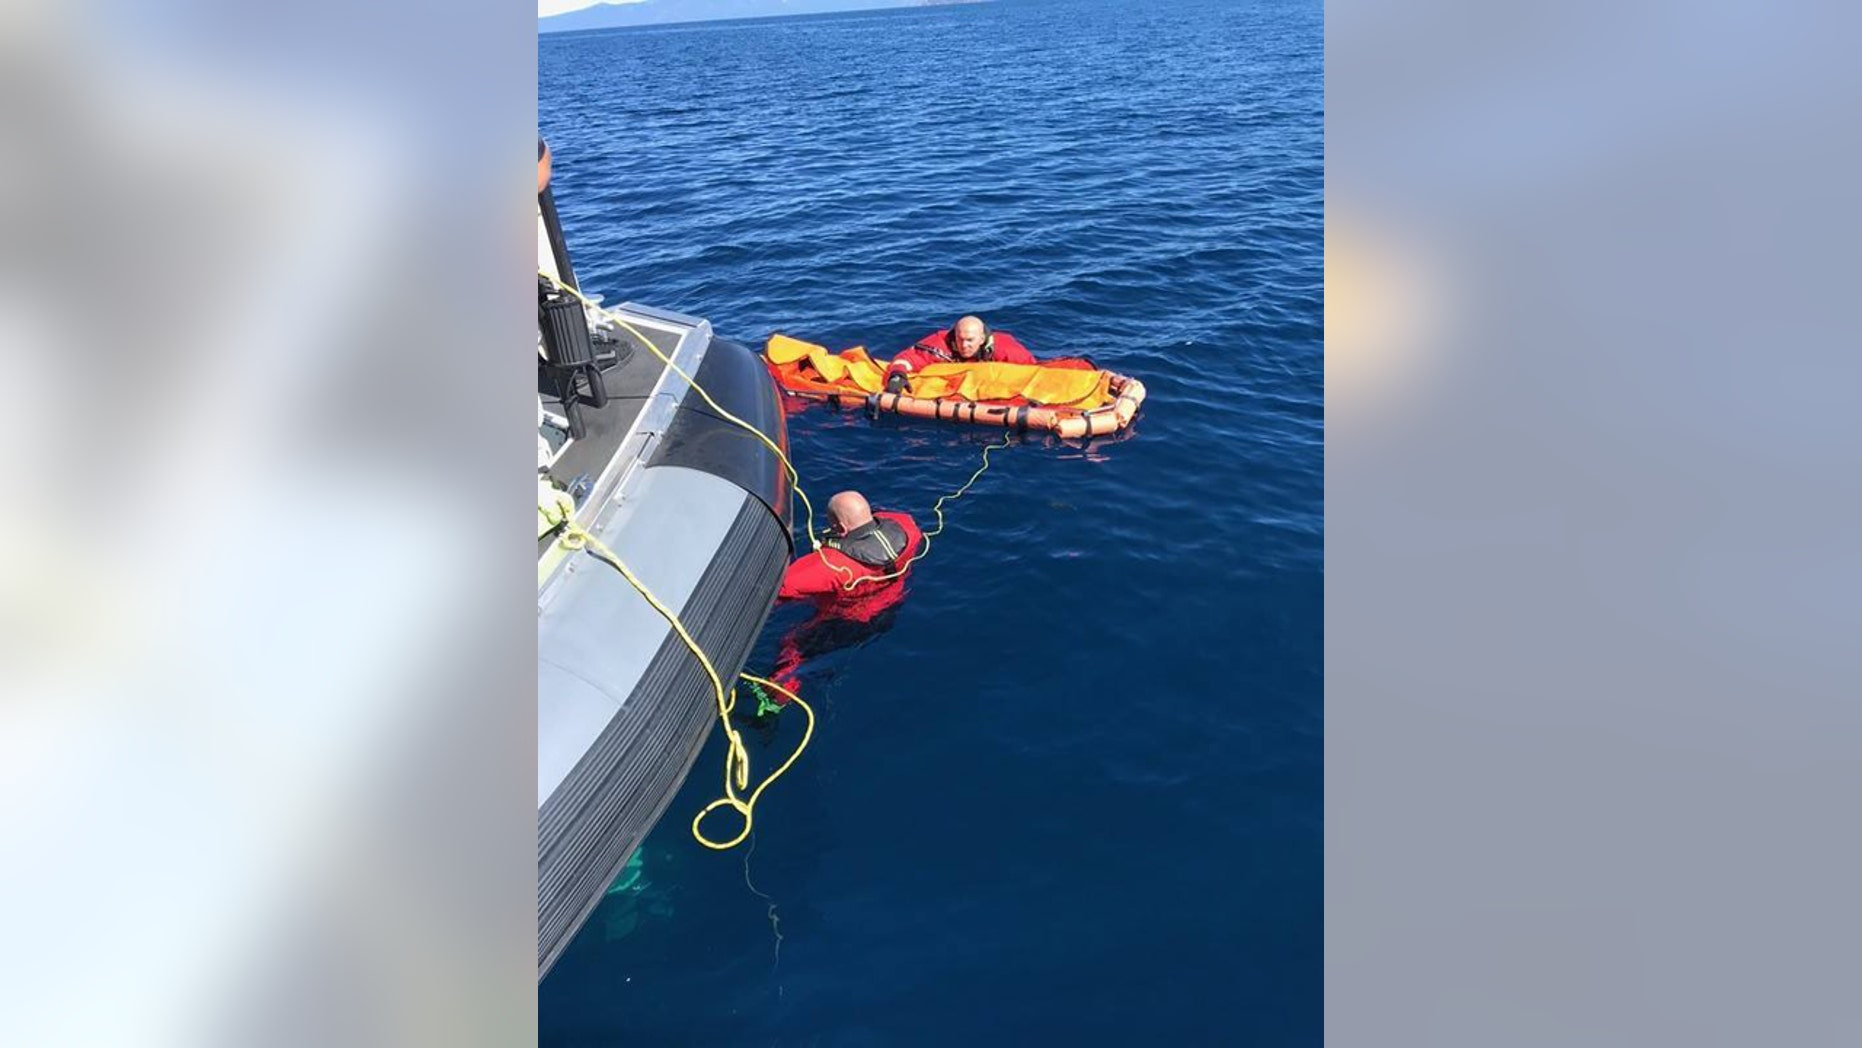 Authorities recovered the body of Chaitanya Datla, 33, over 1,000 feet in the depths of Lake Tahoe on Monday.